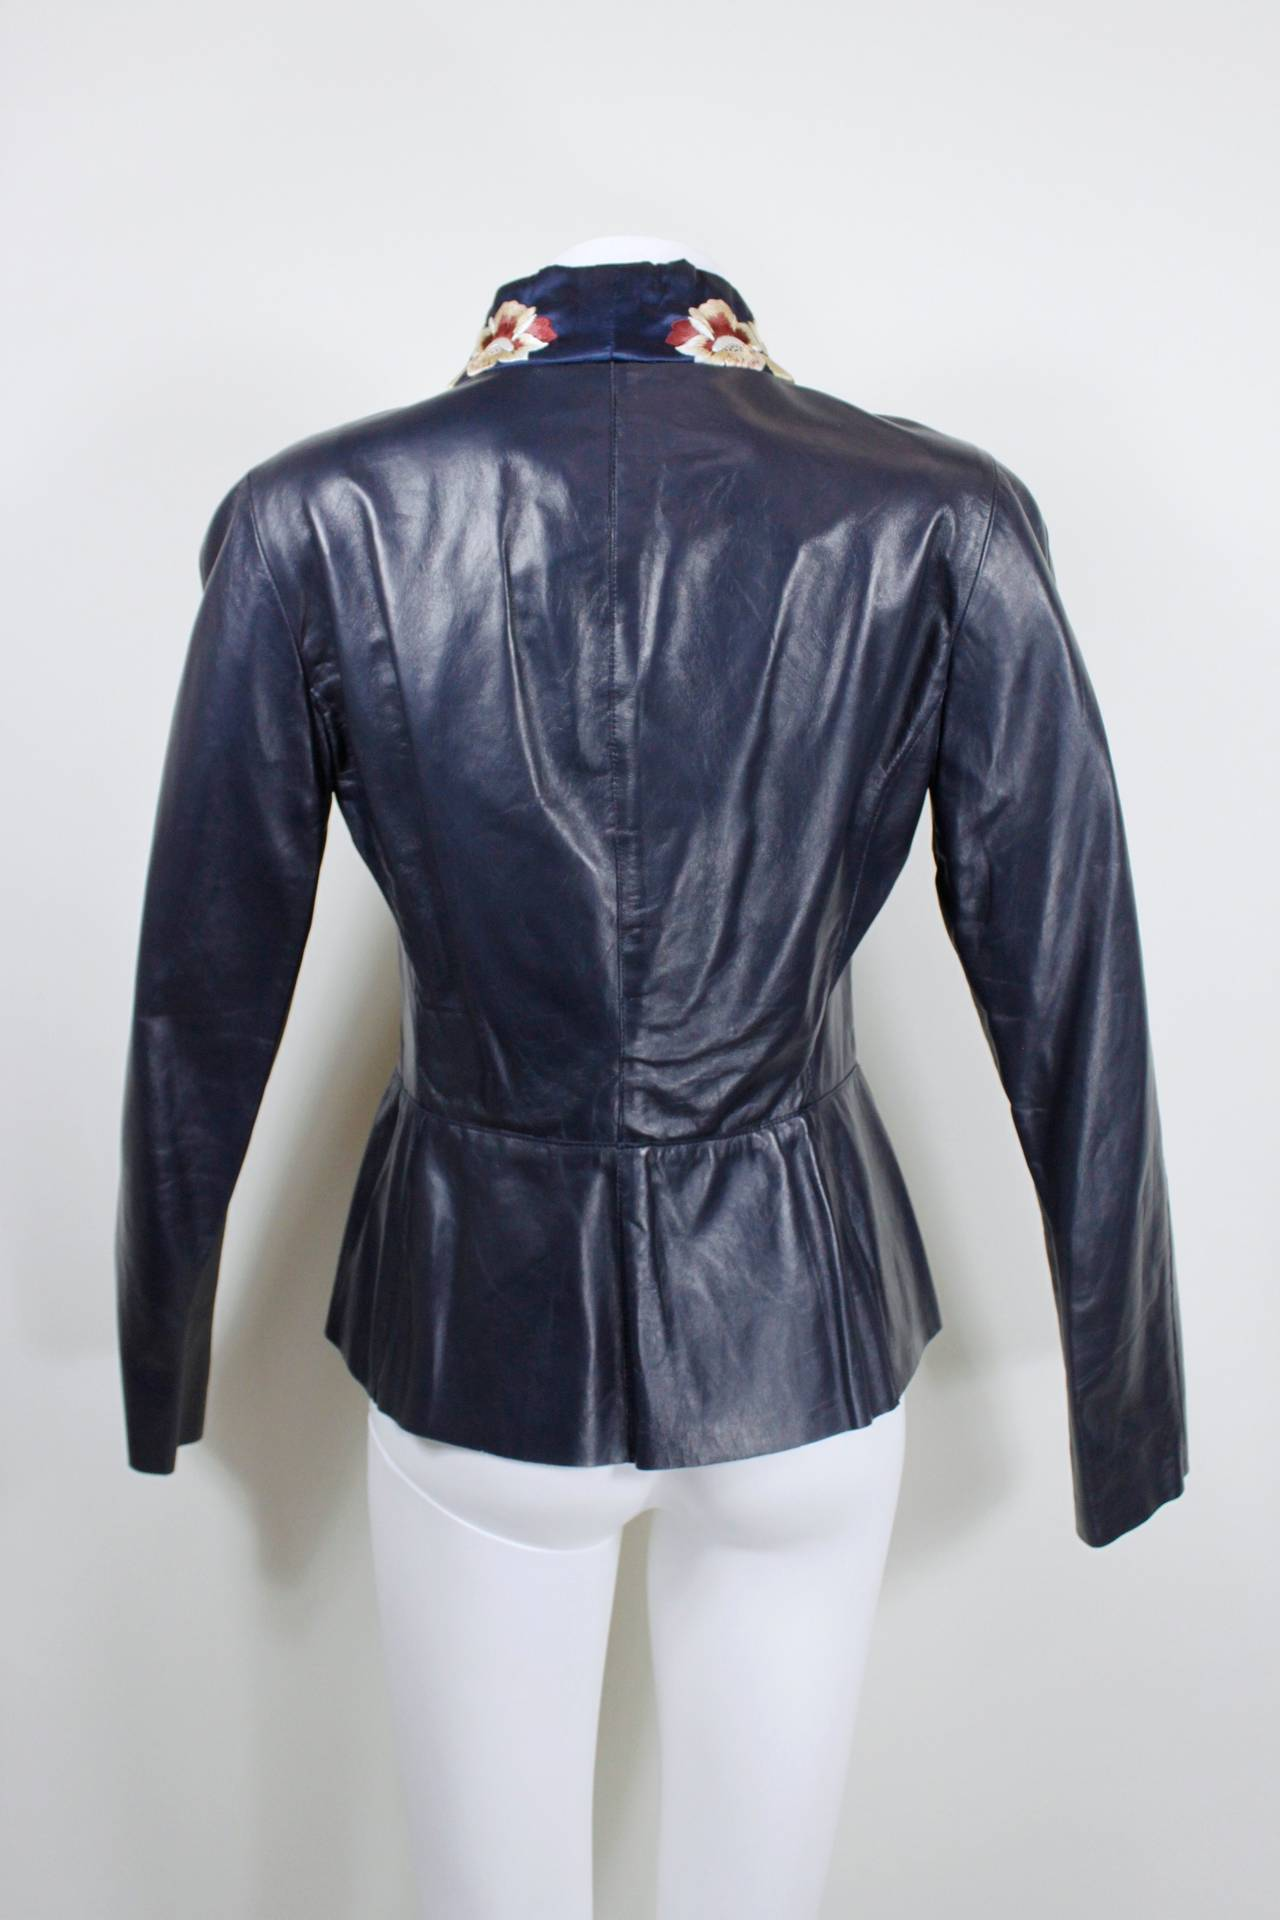 Blumarine Navy Leather Jacket with Japanese Inspired Embroidery For Sale 4